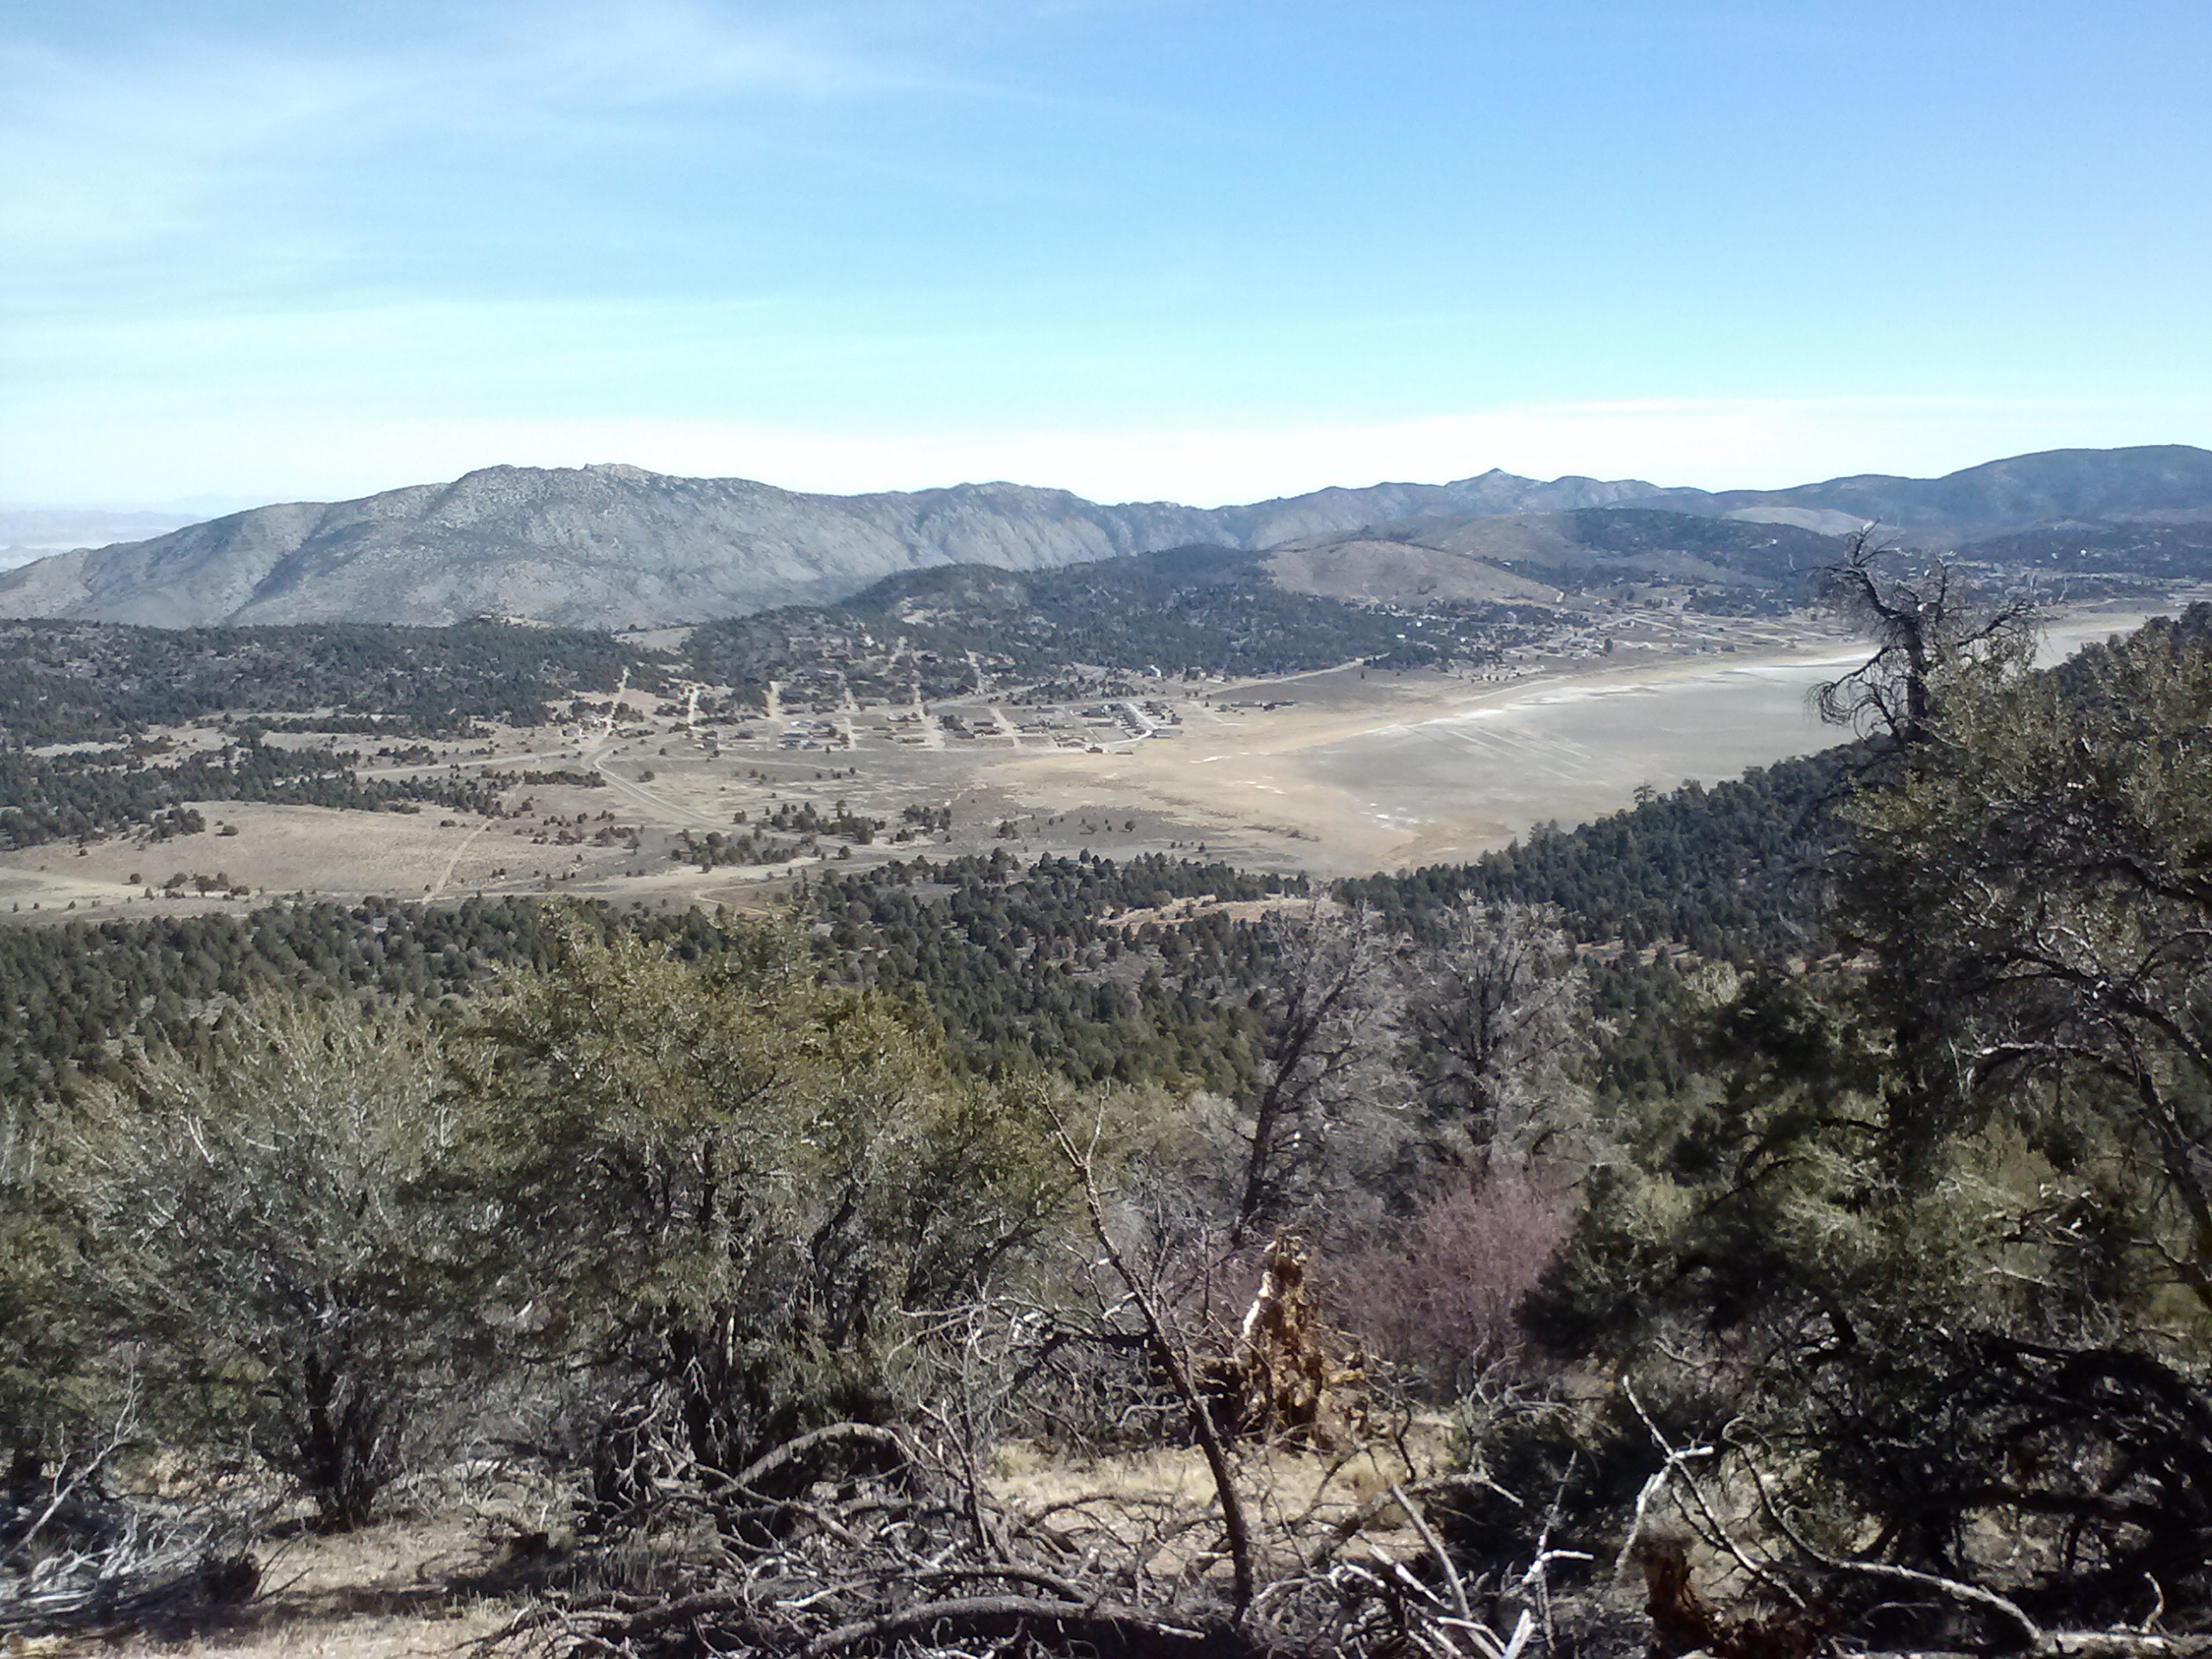 View towards the dry lakebed of Baldwin Lake